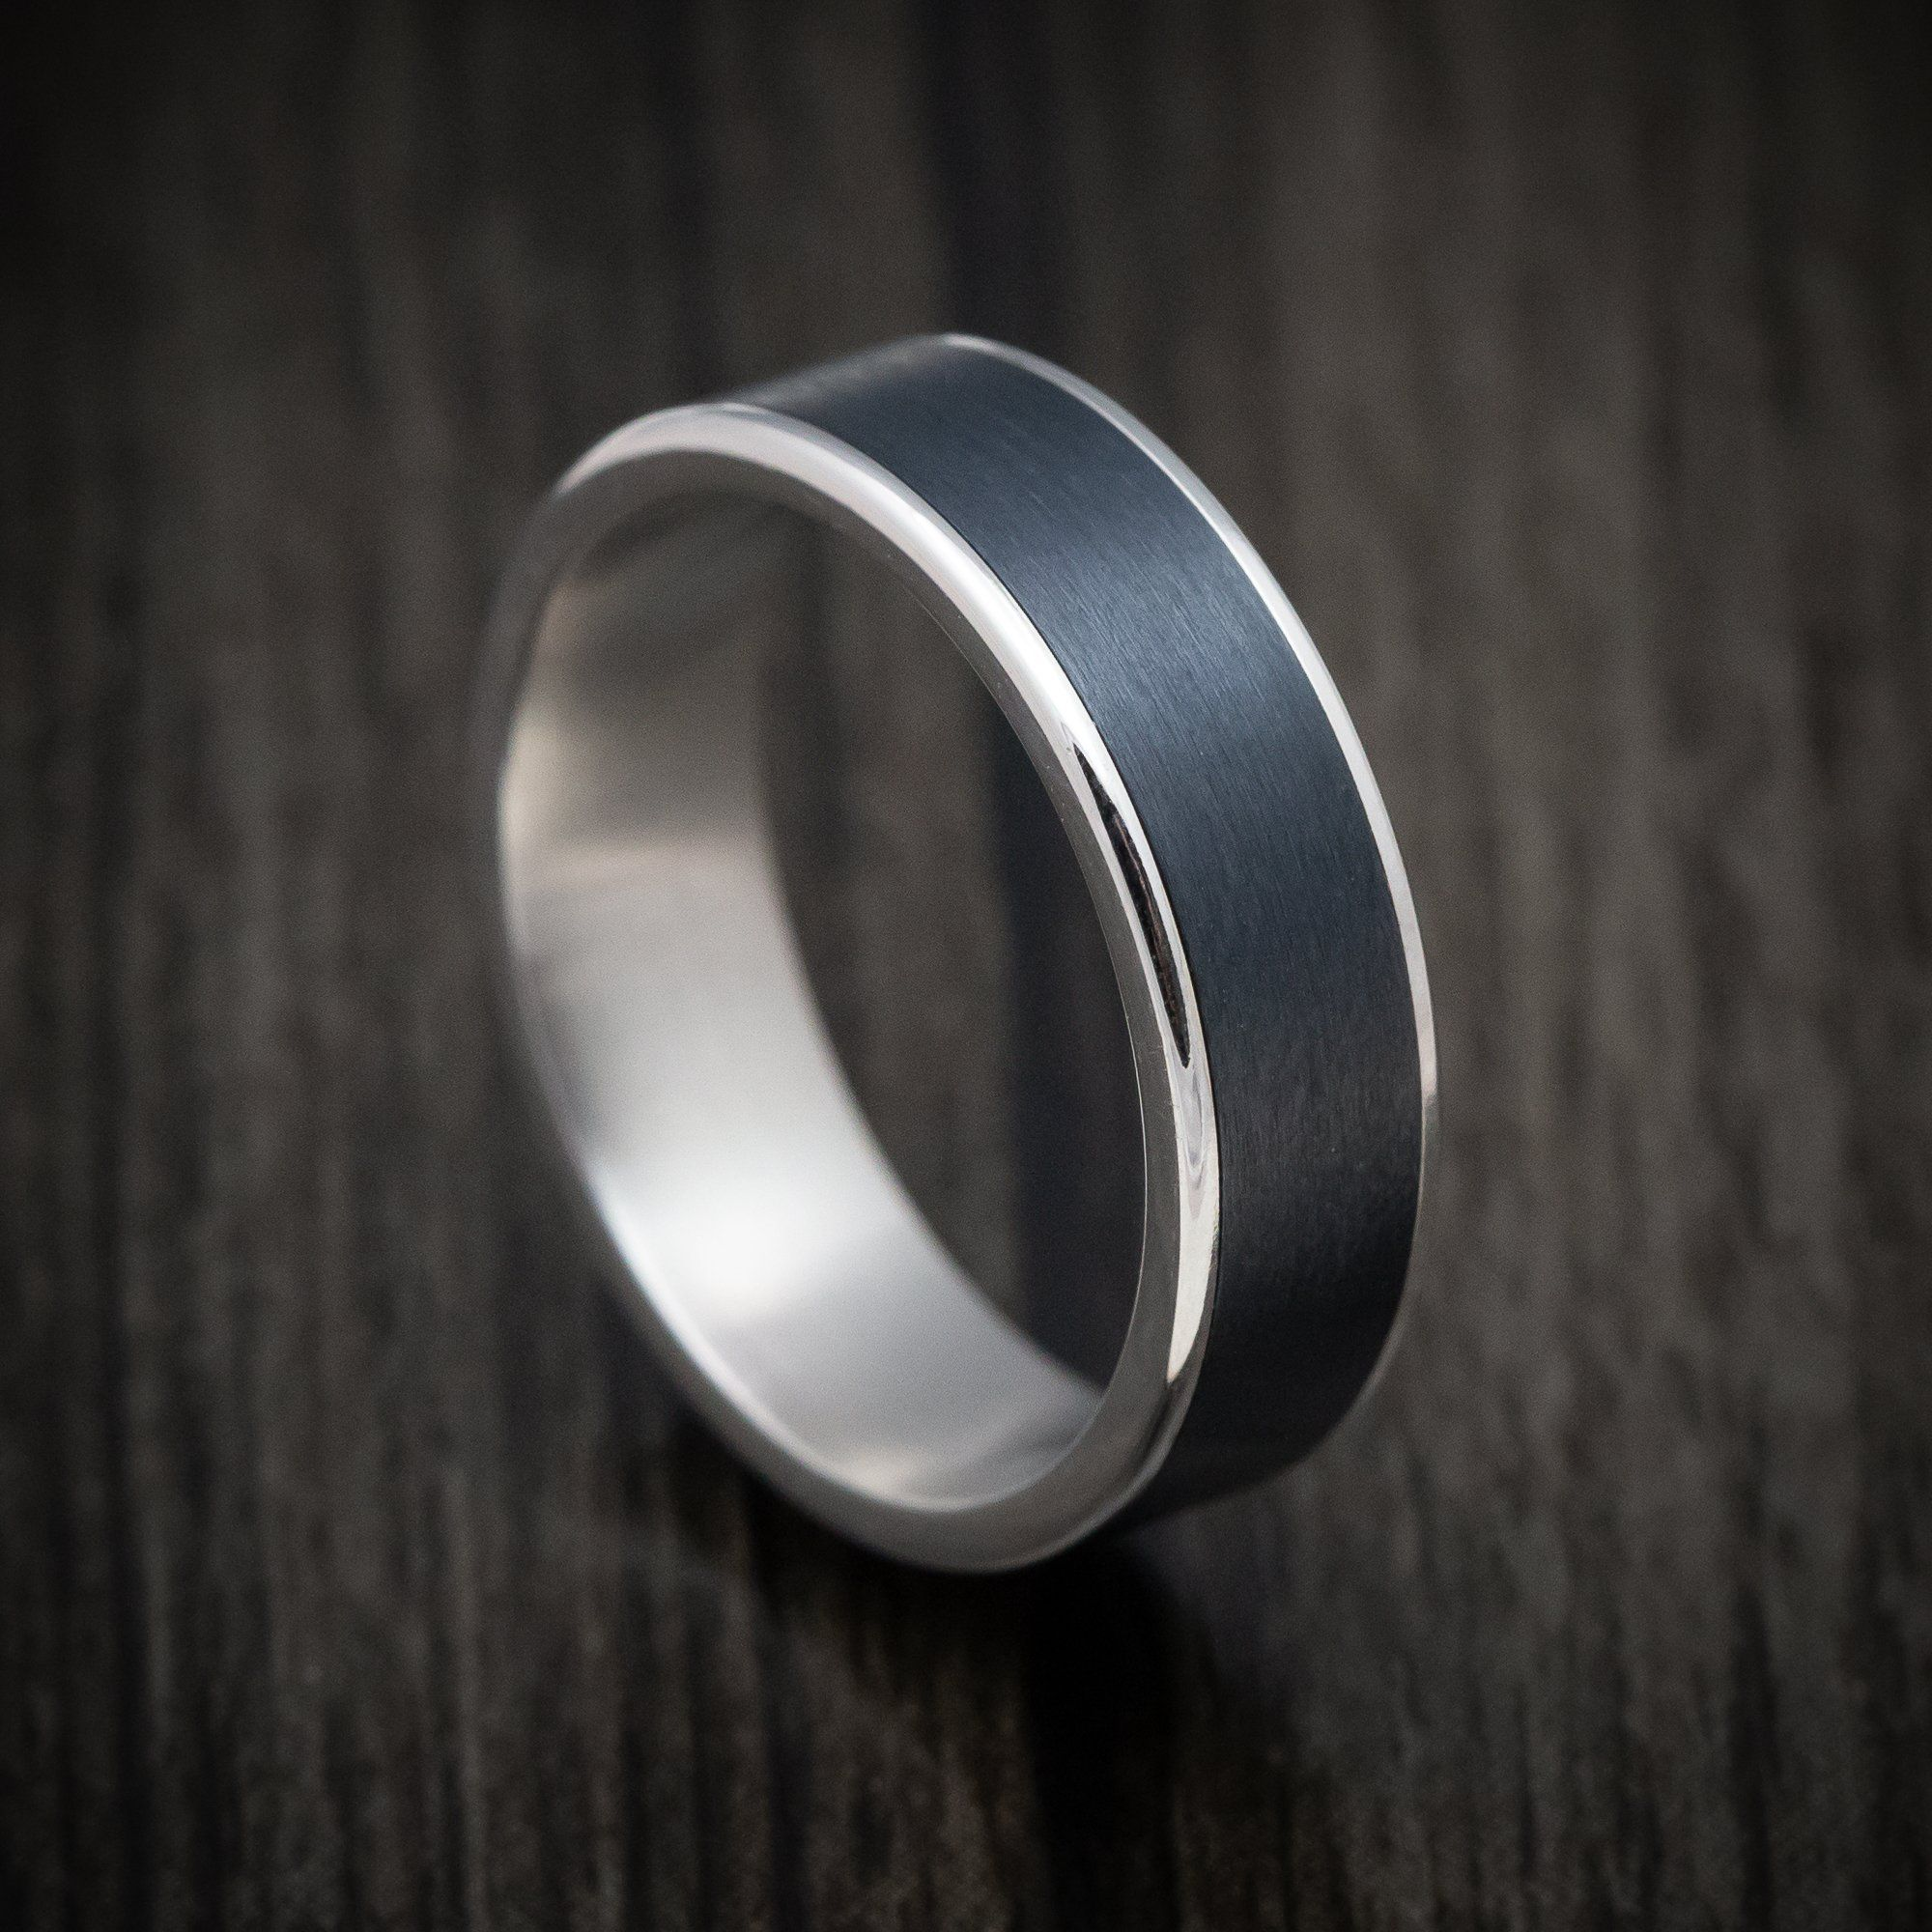 14k White Gold And Black Titanium Mens Ring Titanium Rings For Men Black Titanium Ring Men Rings For Men